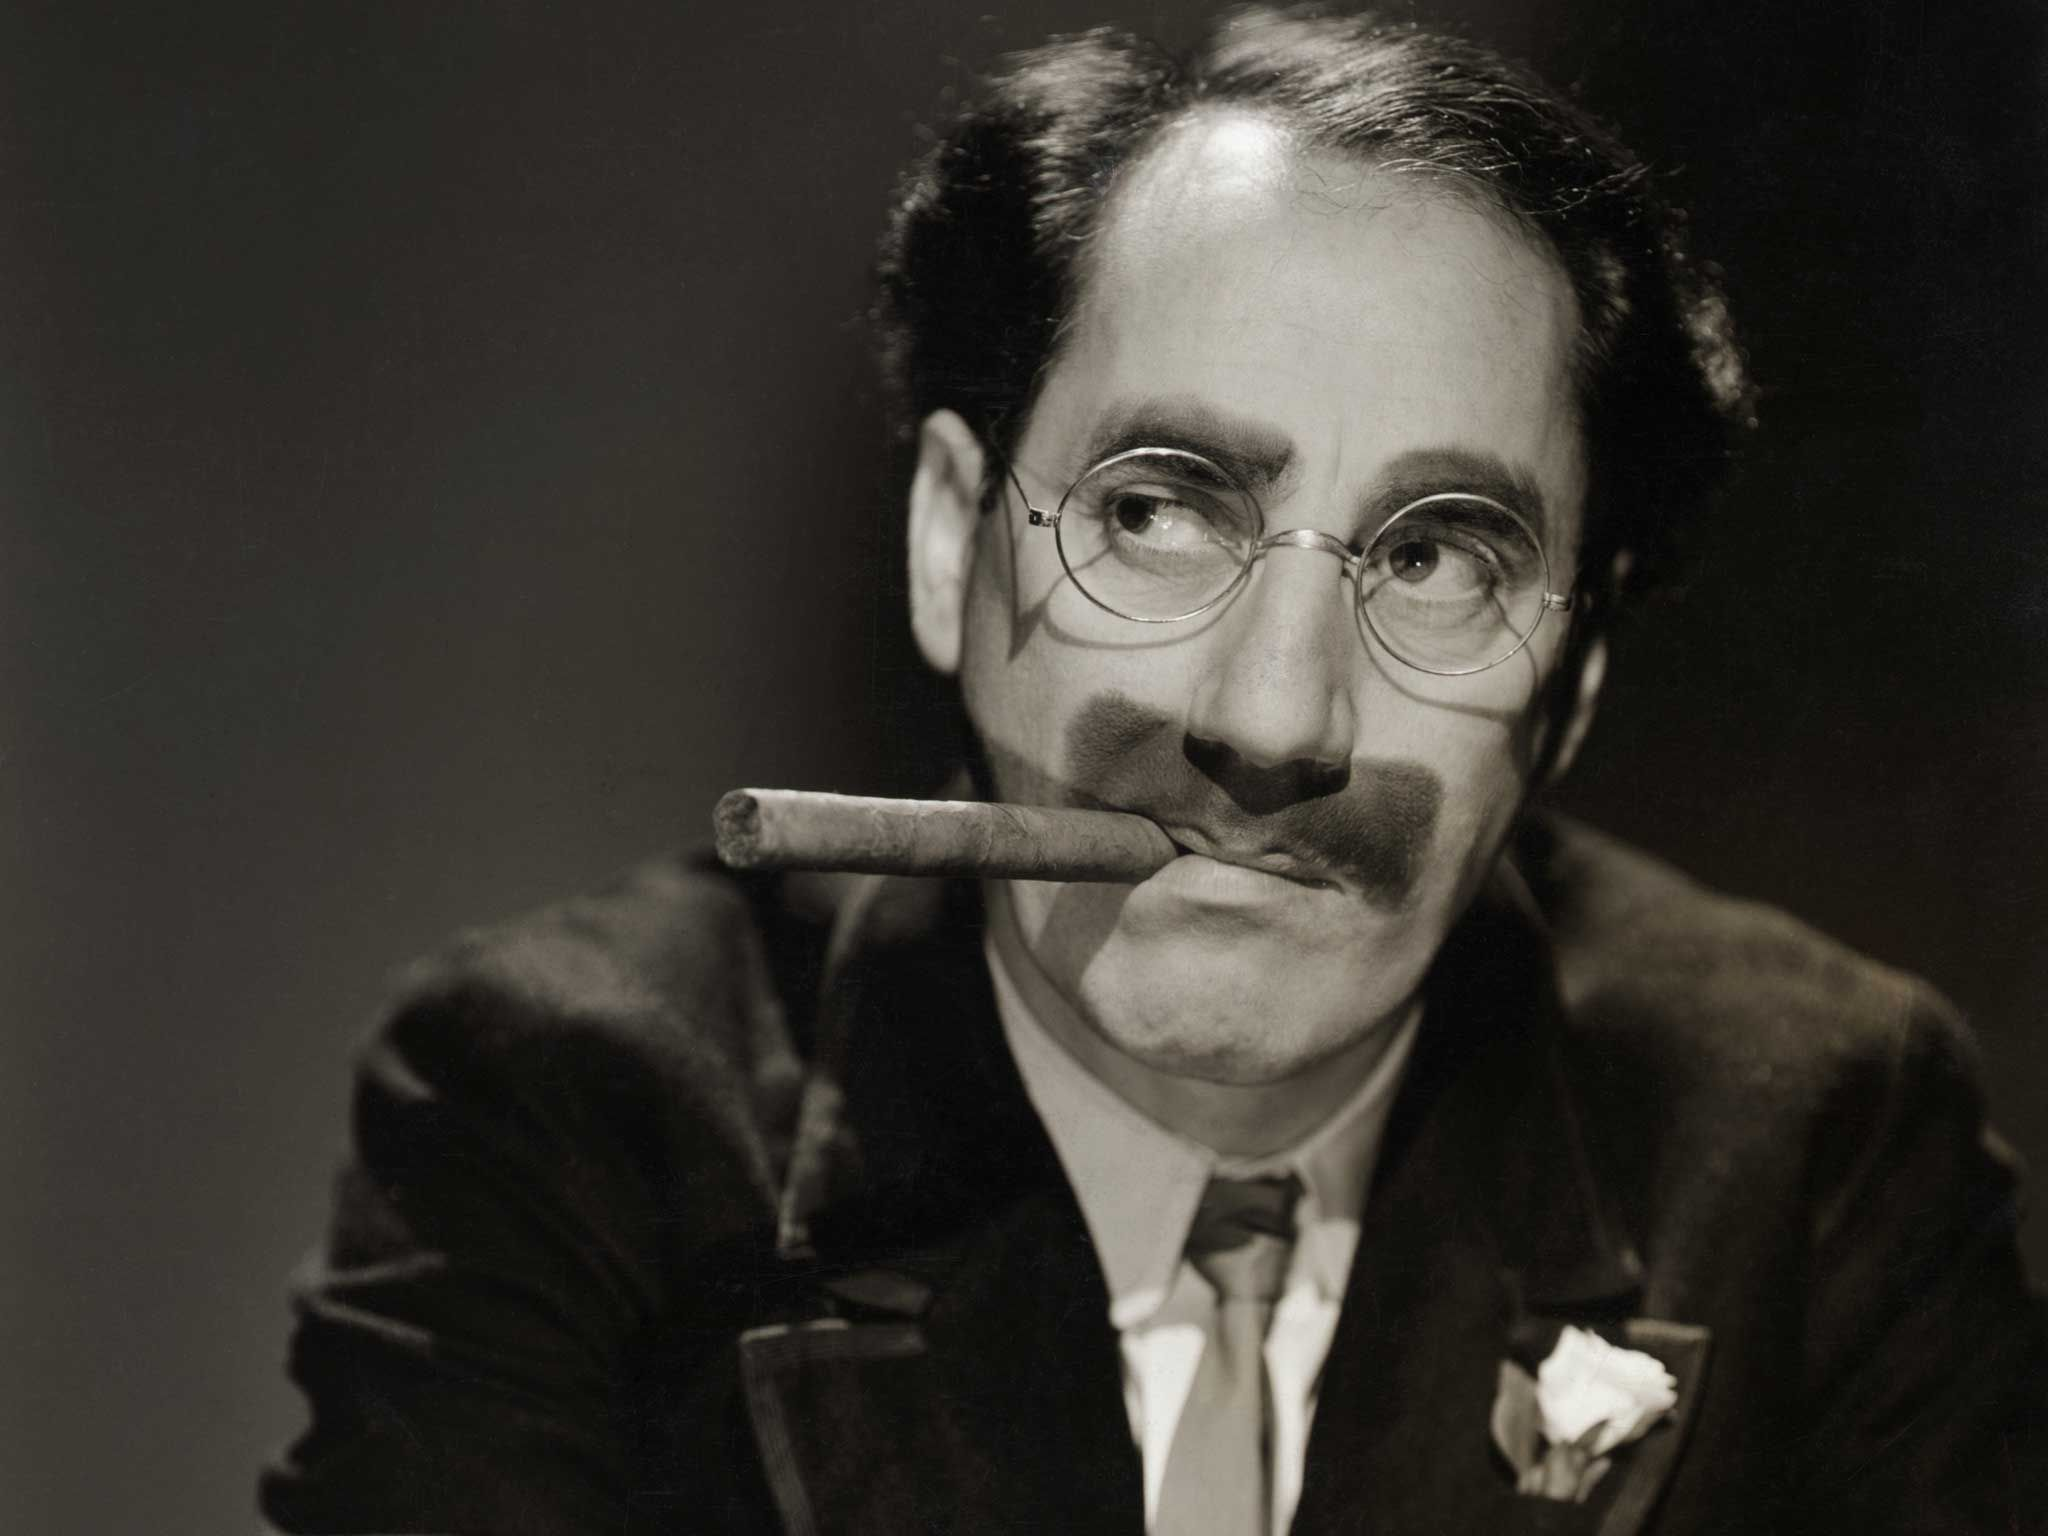 2048x1536 - Groucho Marx Wallpapers 12